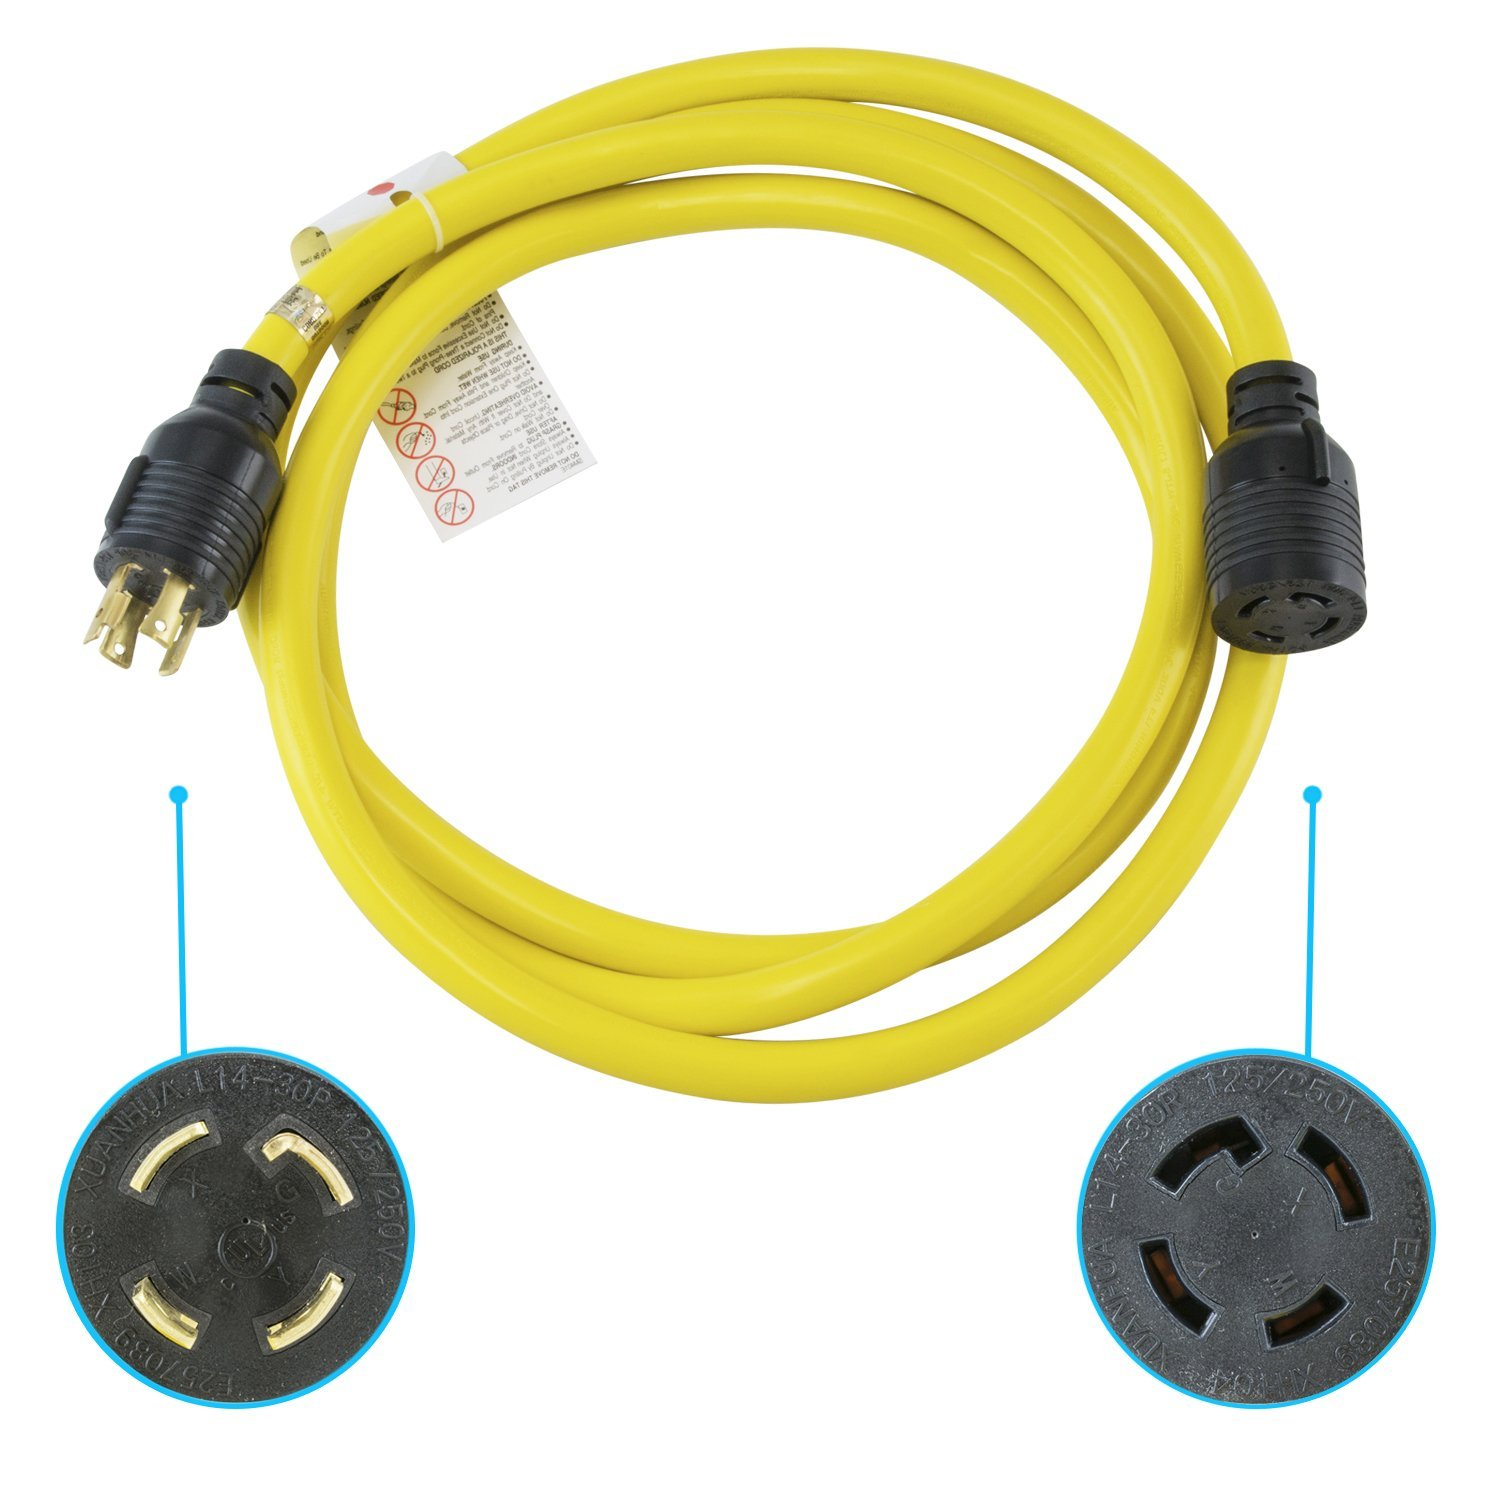 Houseables Extension Cord, Electric Wire, 4 Prong, 30 Amp, 125-250v, Single, Yellow, 10 Ft, All Rubber, 10 Gauge, Heavy Duty, L14-30, Commercial, Electrical Power, Generator Cable, With Locking Switch